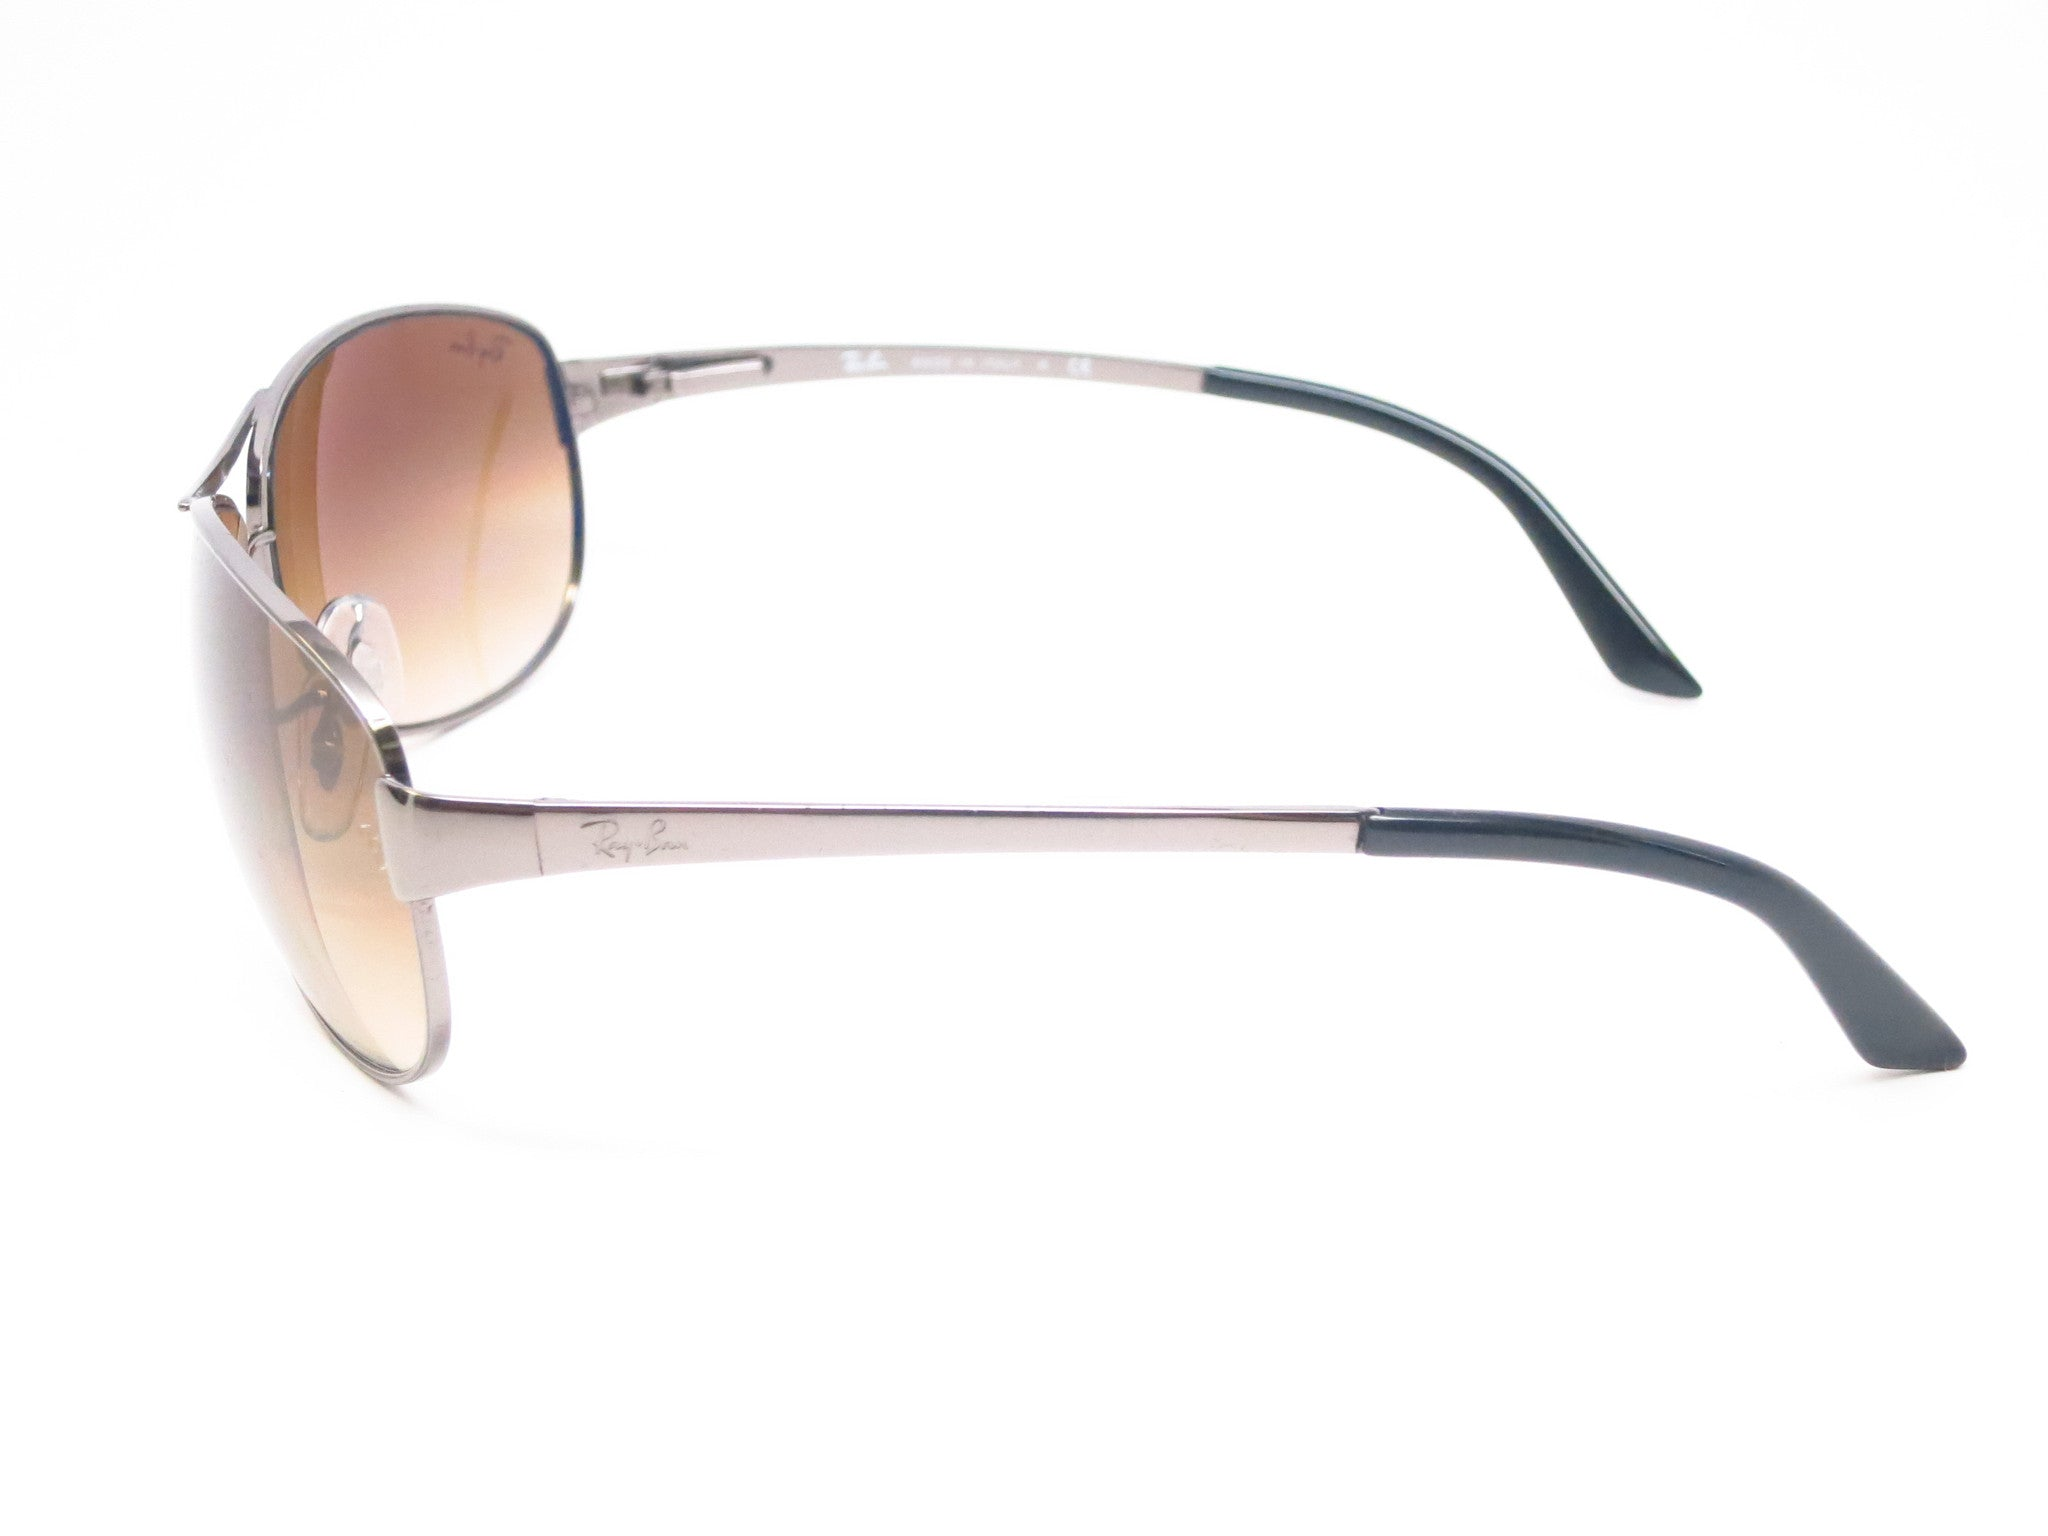 c6a1253ee4 Ray Ban Replacement Lens 3342 « Heritage Malta